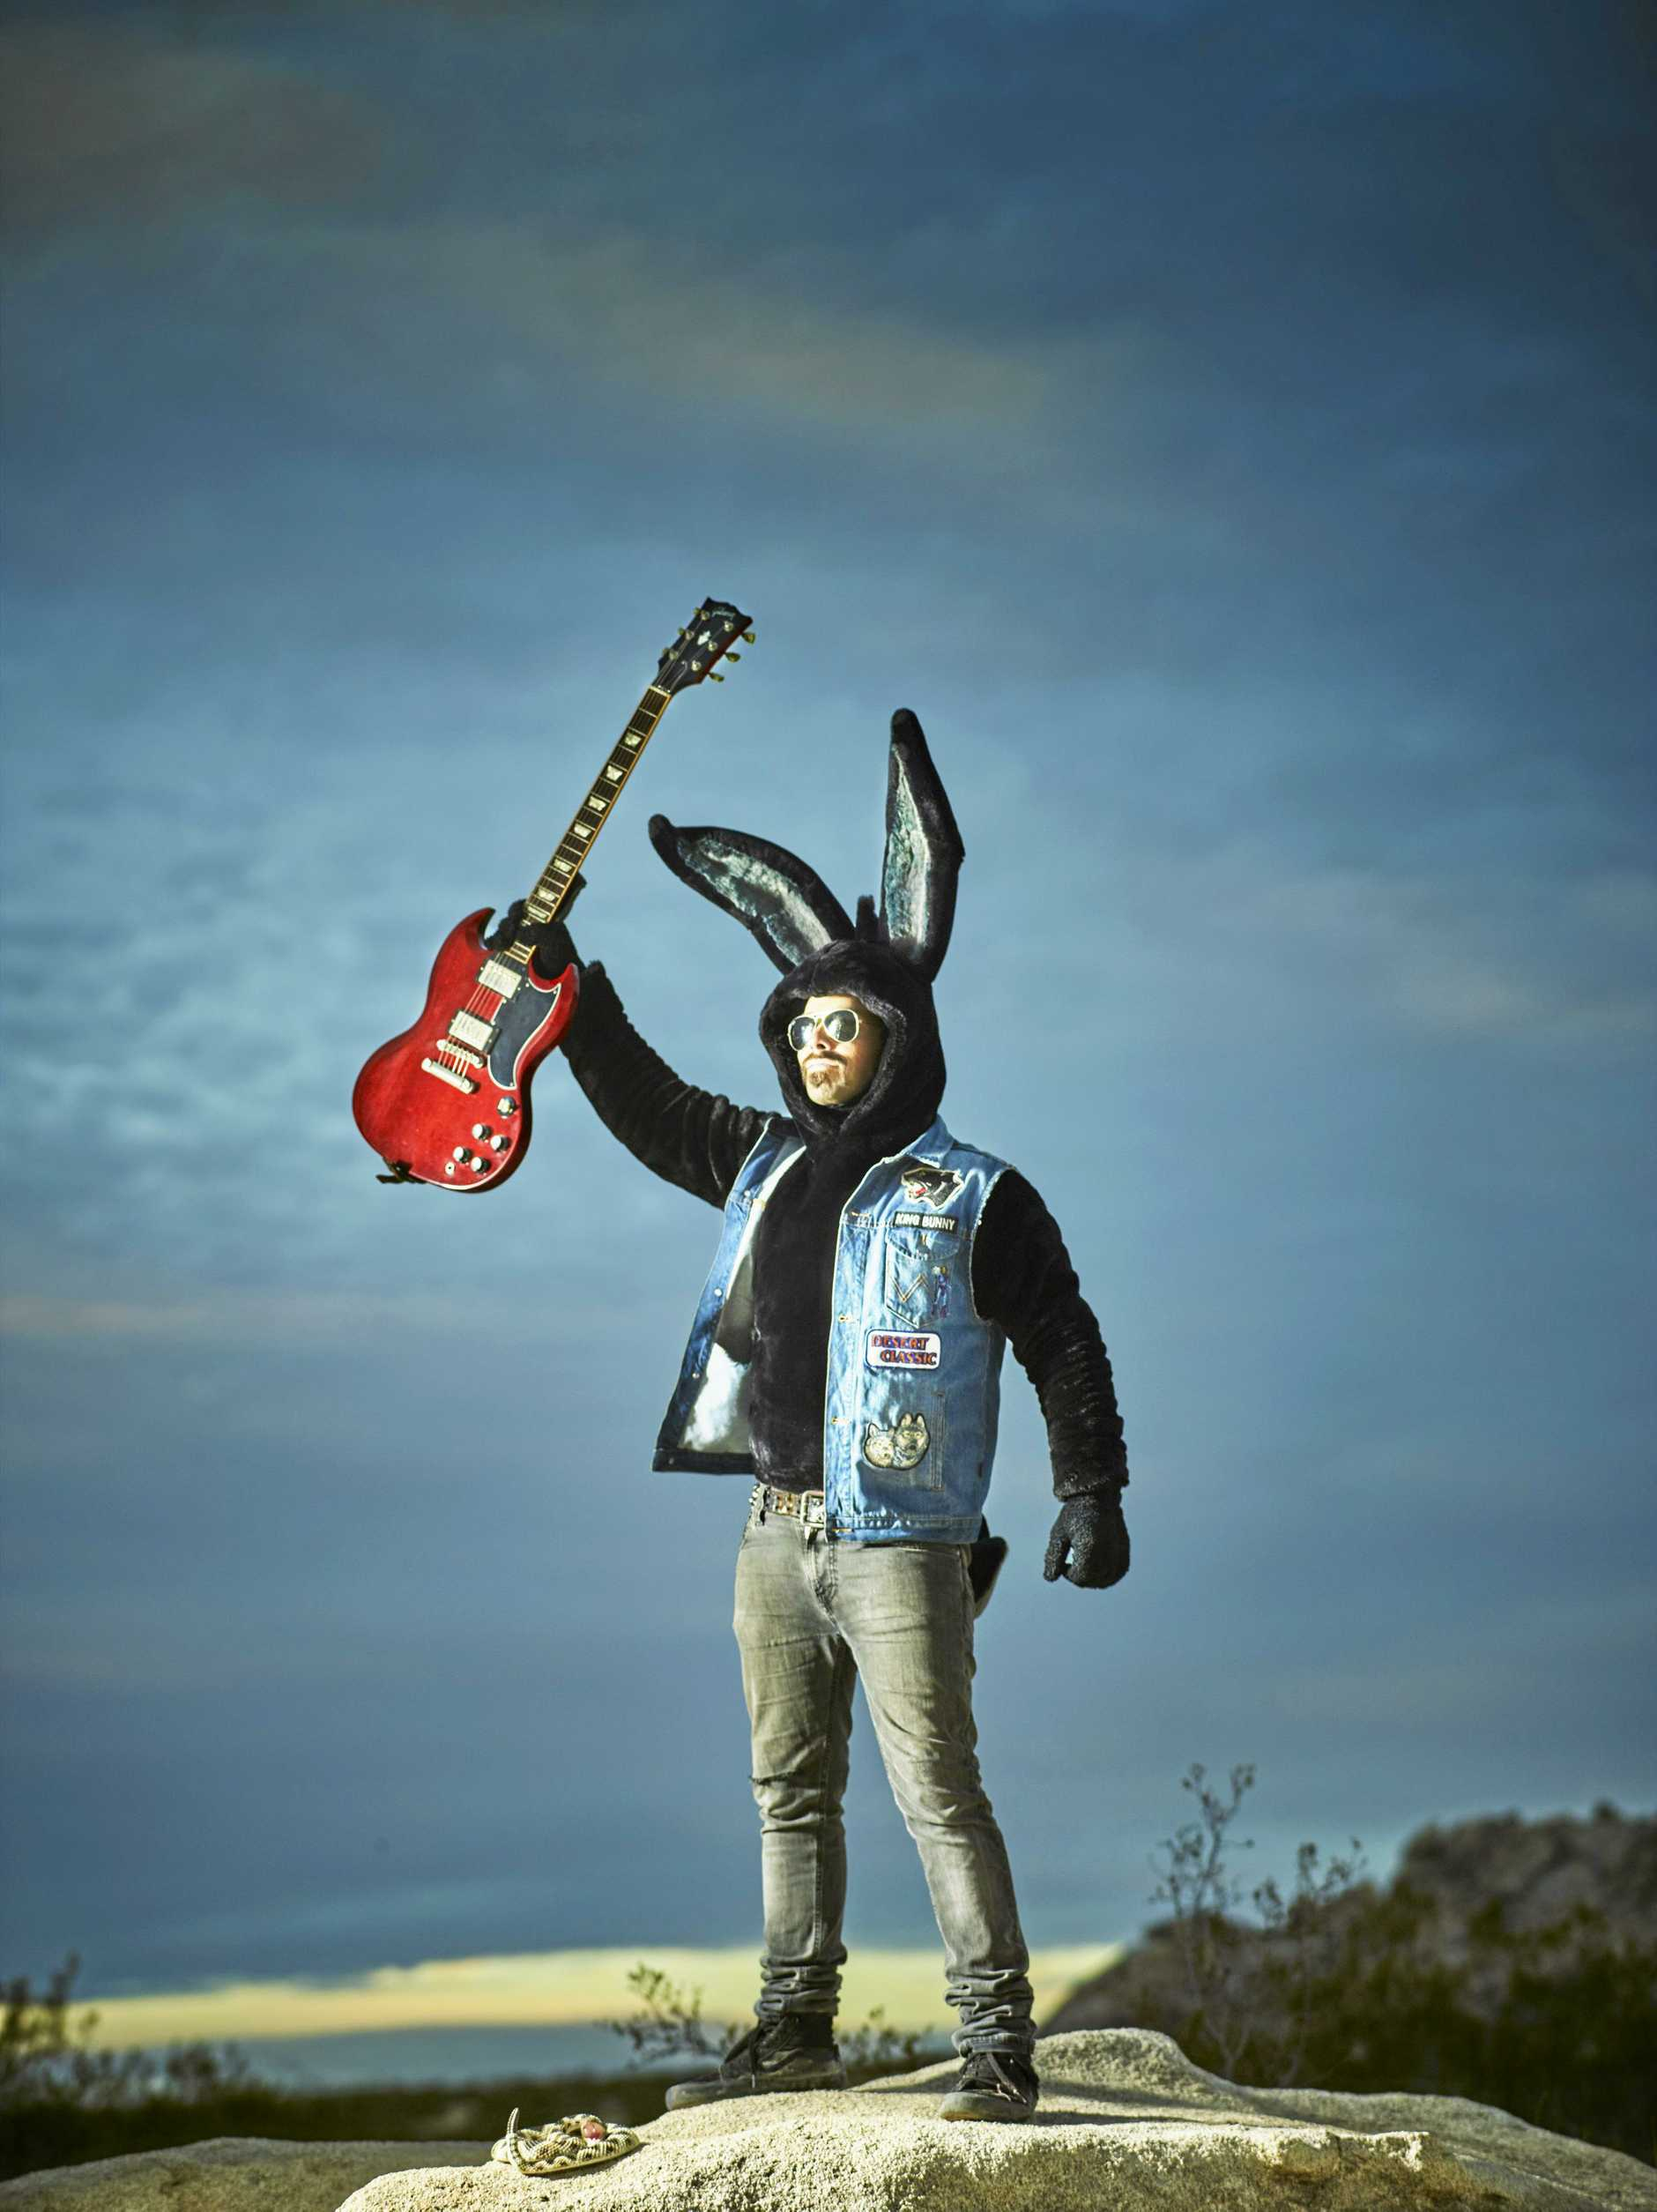 Bangalow's Andy Walker is King Bunny, the star of children's music project Bunny Racket.